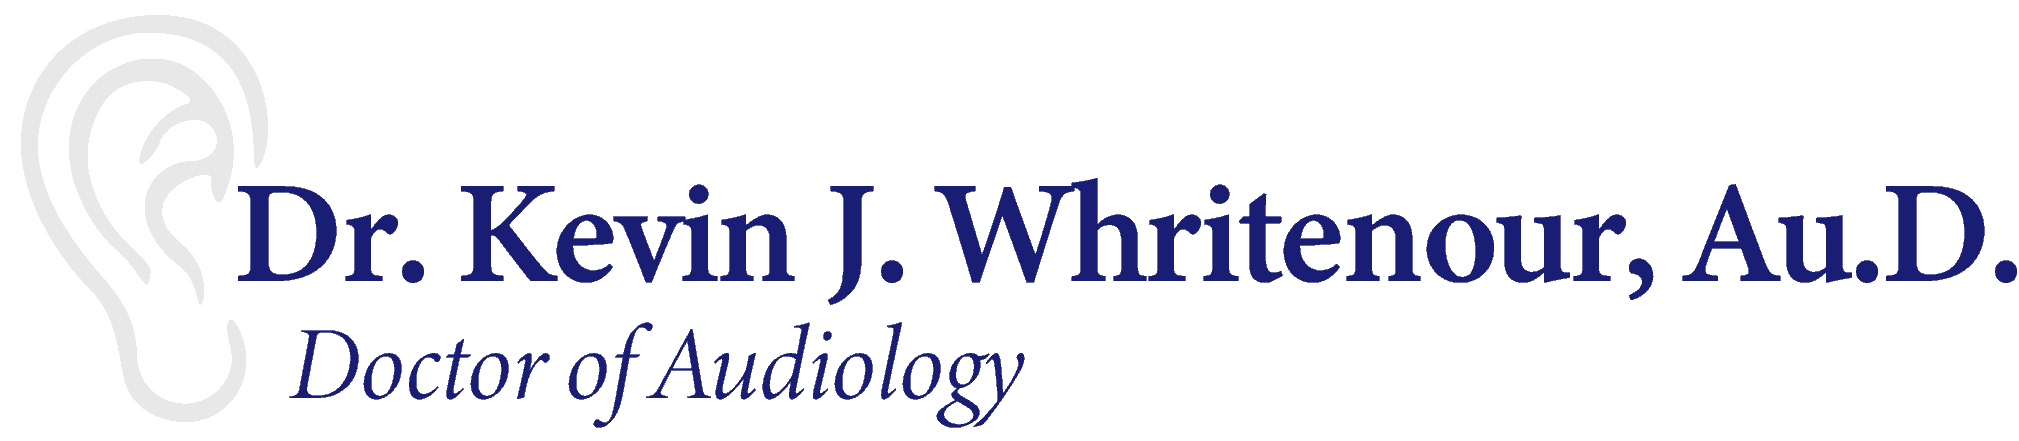 Dr. Kevin J. Whritenour, Doctor of Audiology